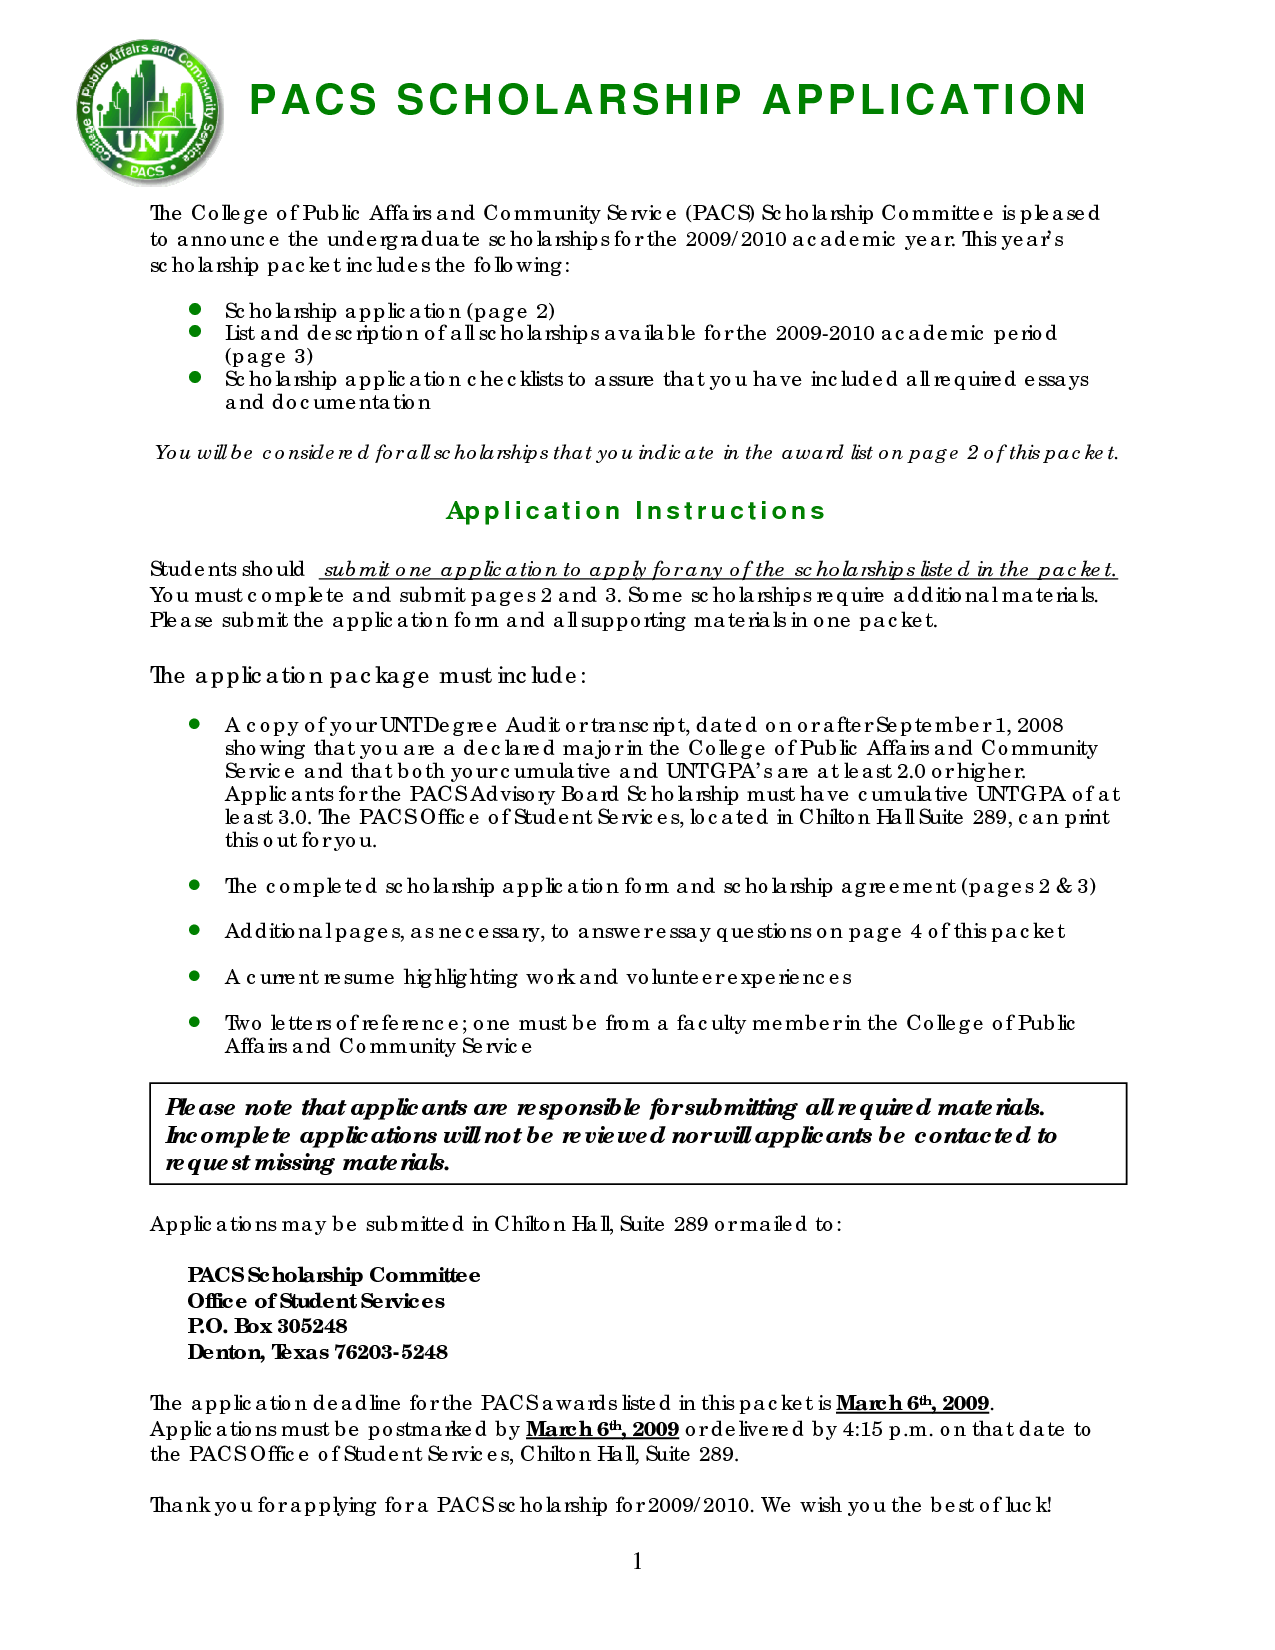 010 Scholarship Essay Prompts Example Writing An For Personal Examples Unique Questions 11exu Rbc Gates And Answers Chevening Psc Leadership Magnificent Robertson 2018-19 Vanderbilt Washington Lee Johnson Full